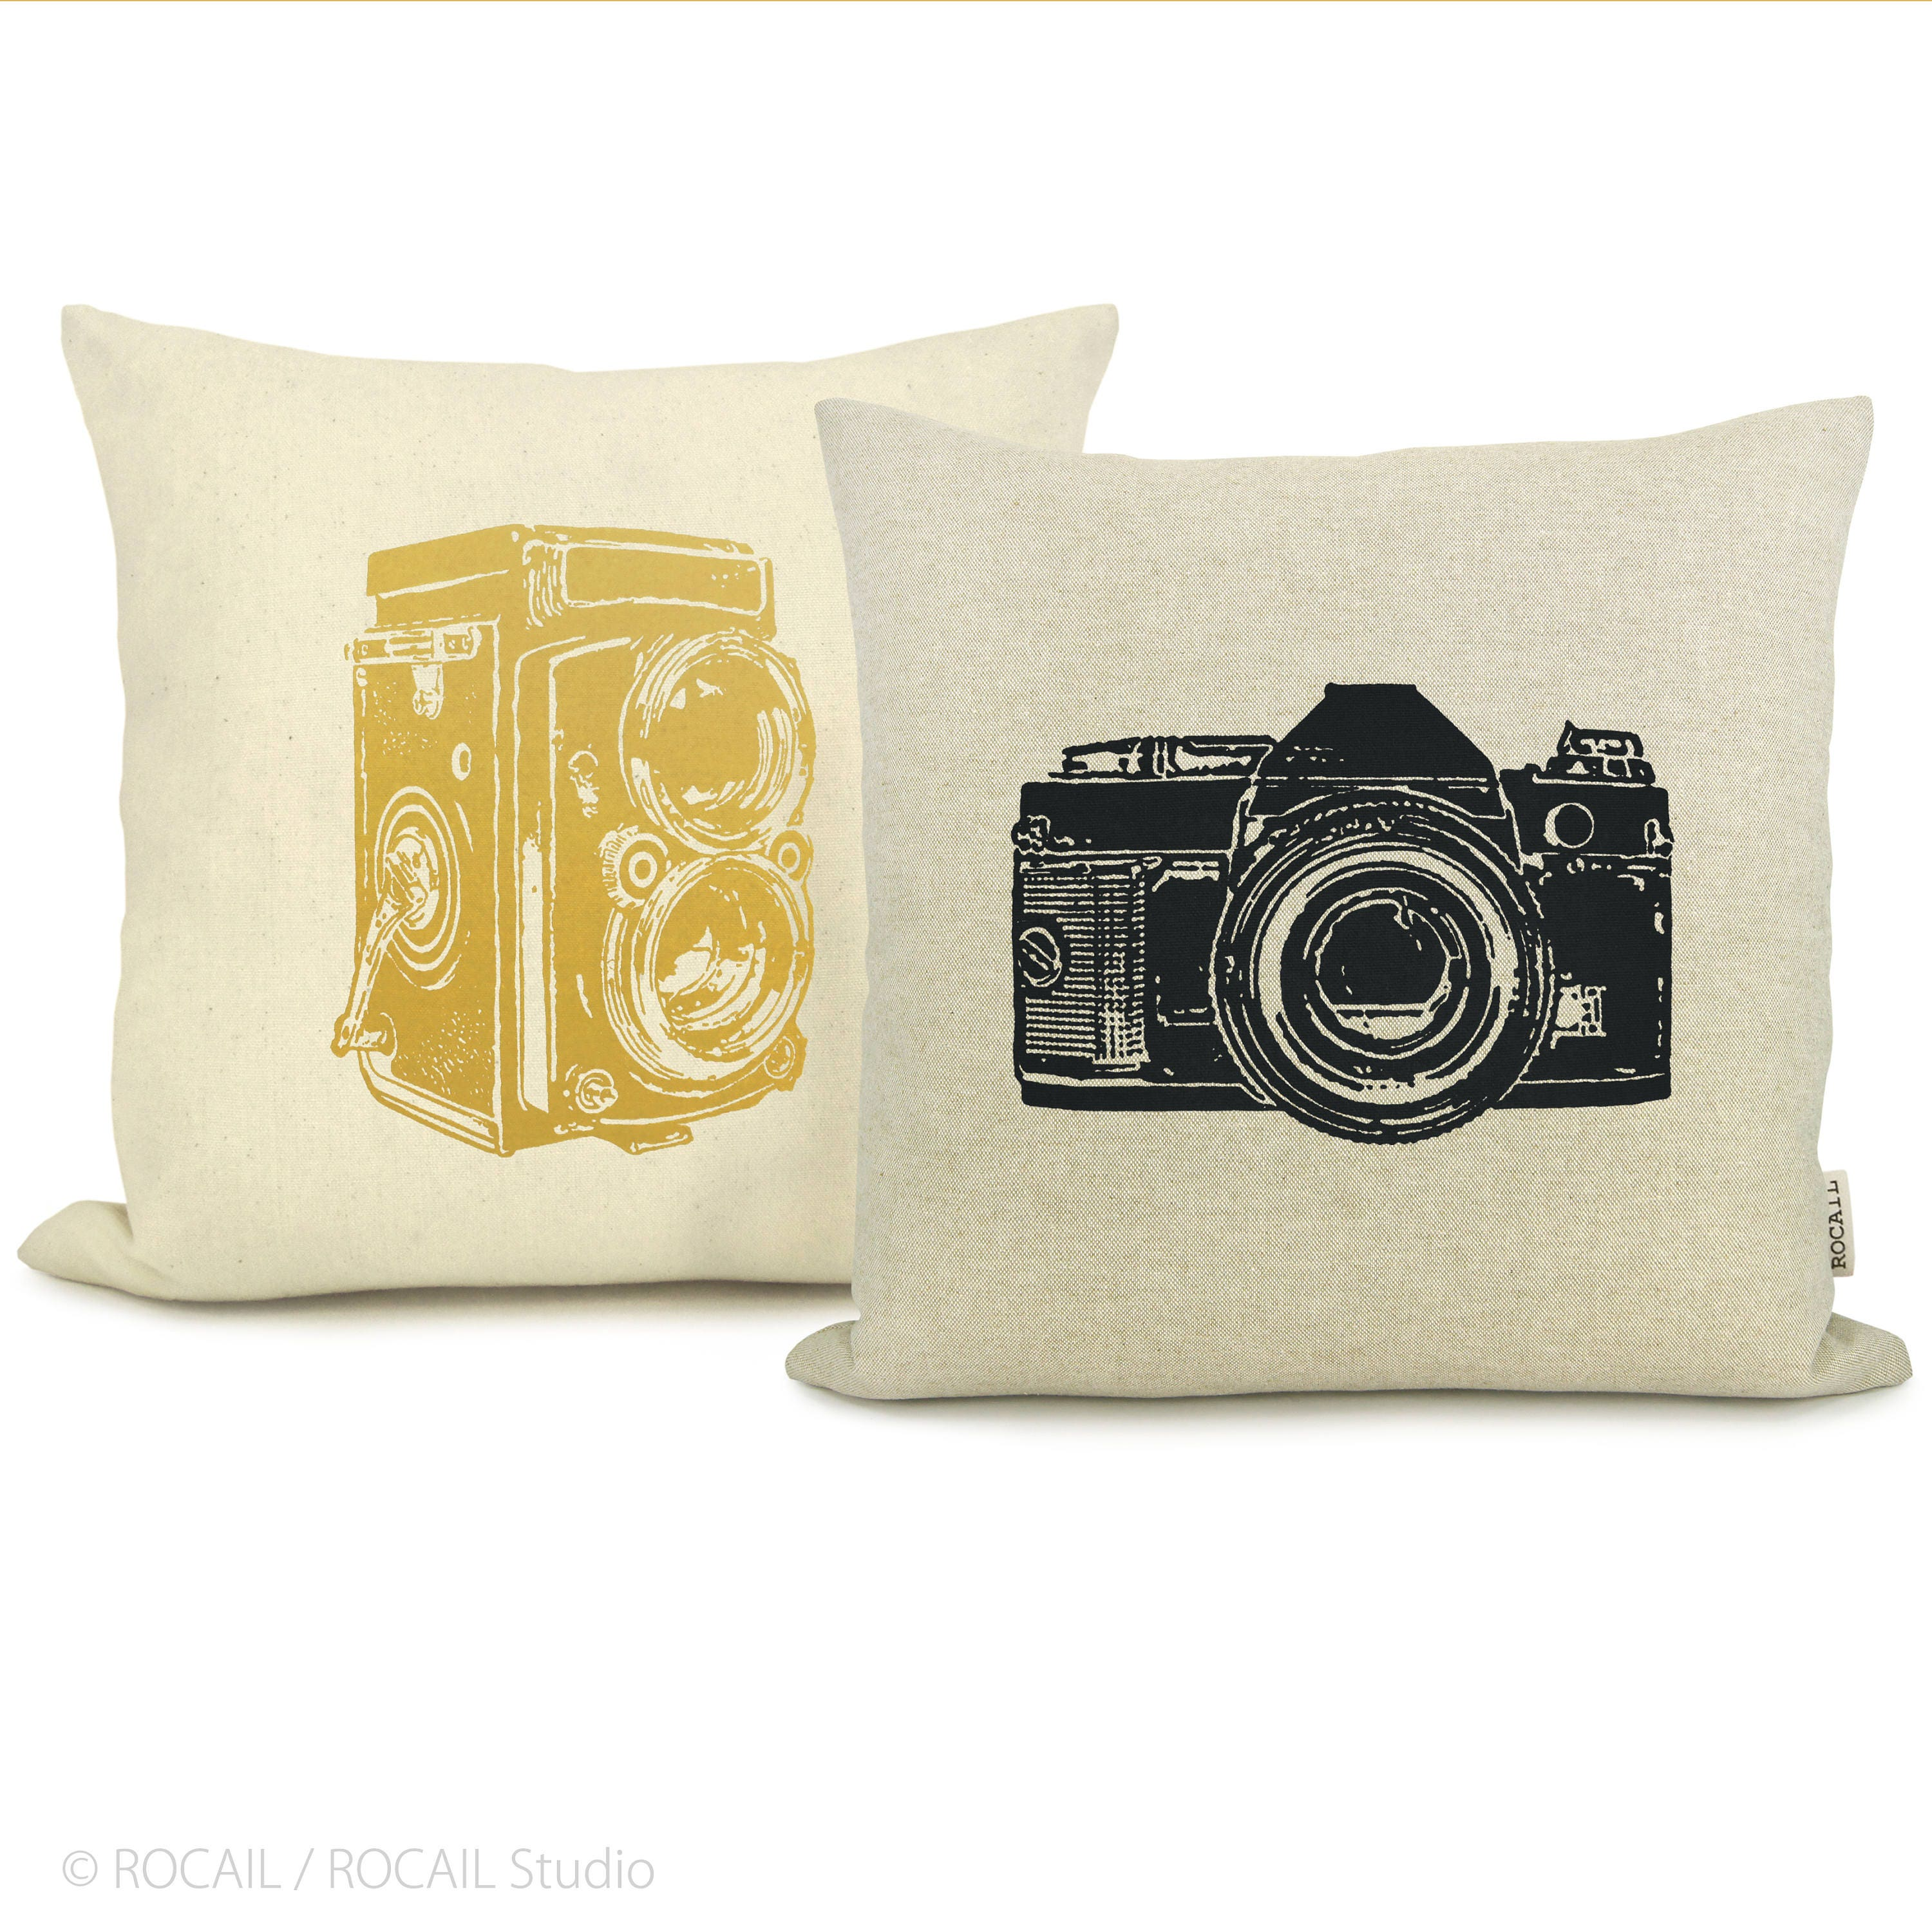 customized cases s pillowcases personalized custom pillow let diy mingle blog